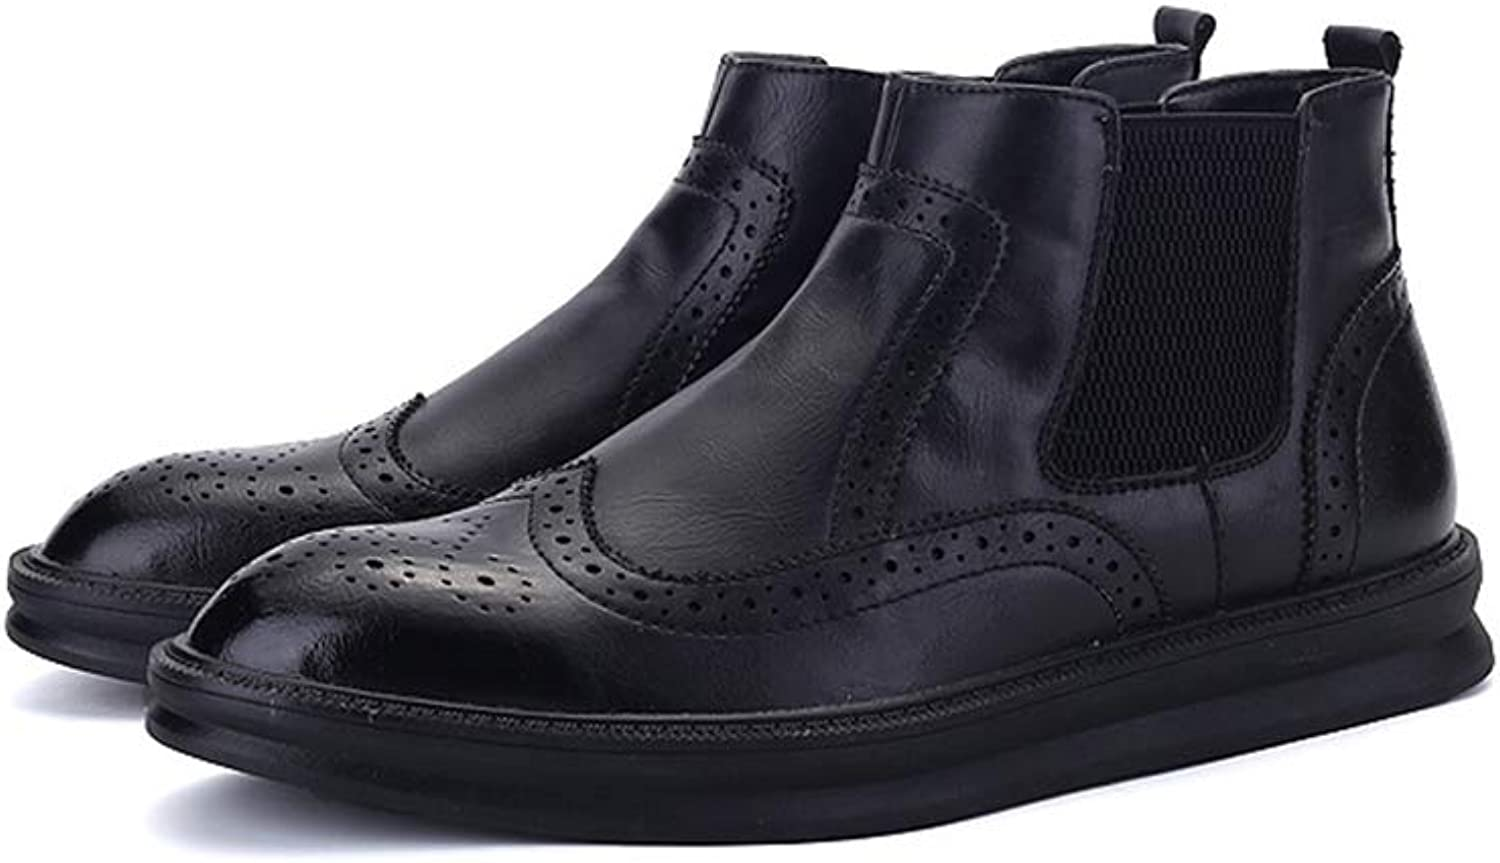 Xujw-shoes 2019 Mens Boots Men's Casual Classic Engraving Brogue Winter Faux Fleece Inside High Top Boot Fashion Ankle Boot